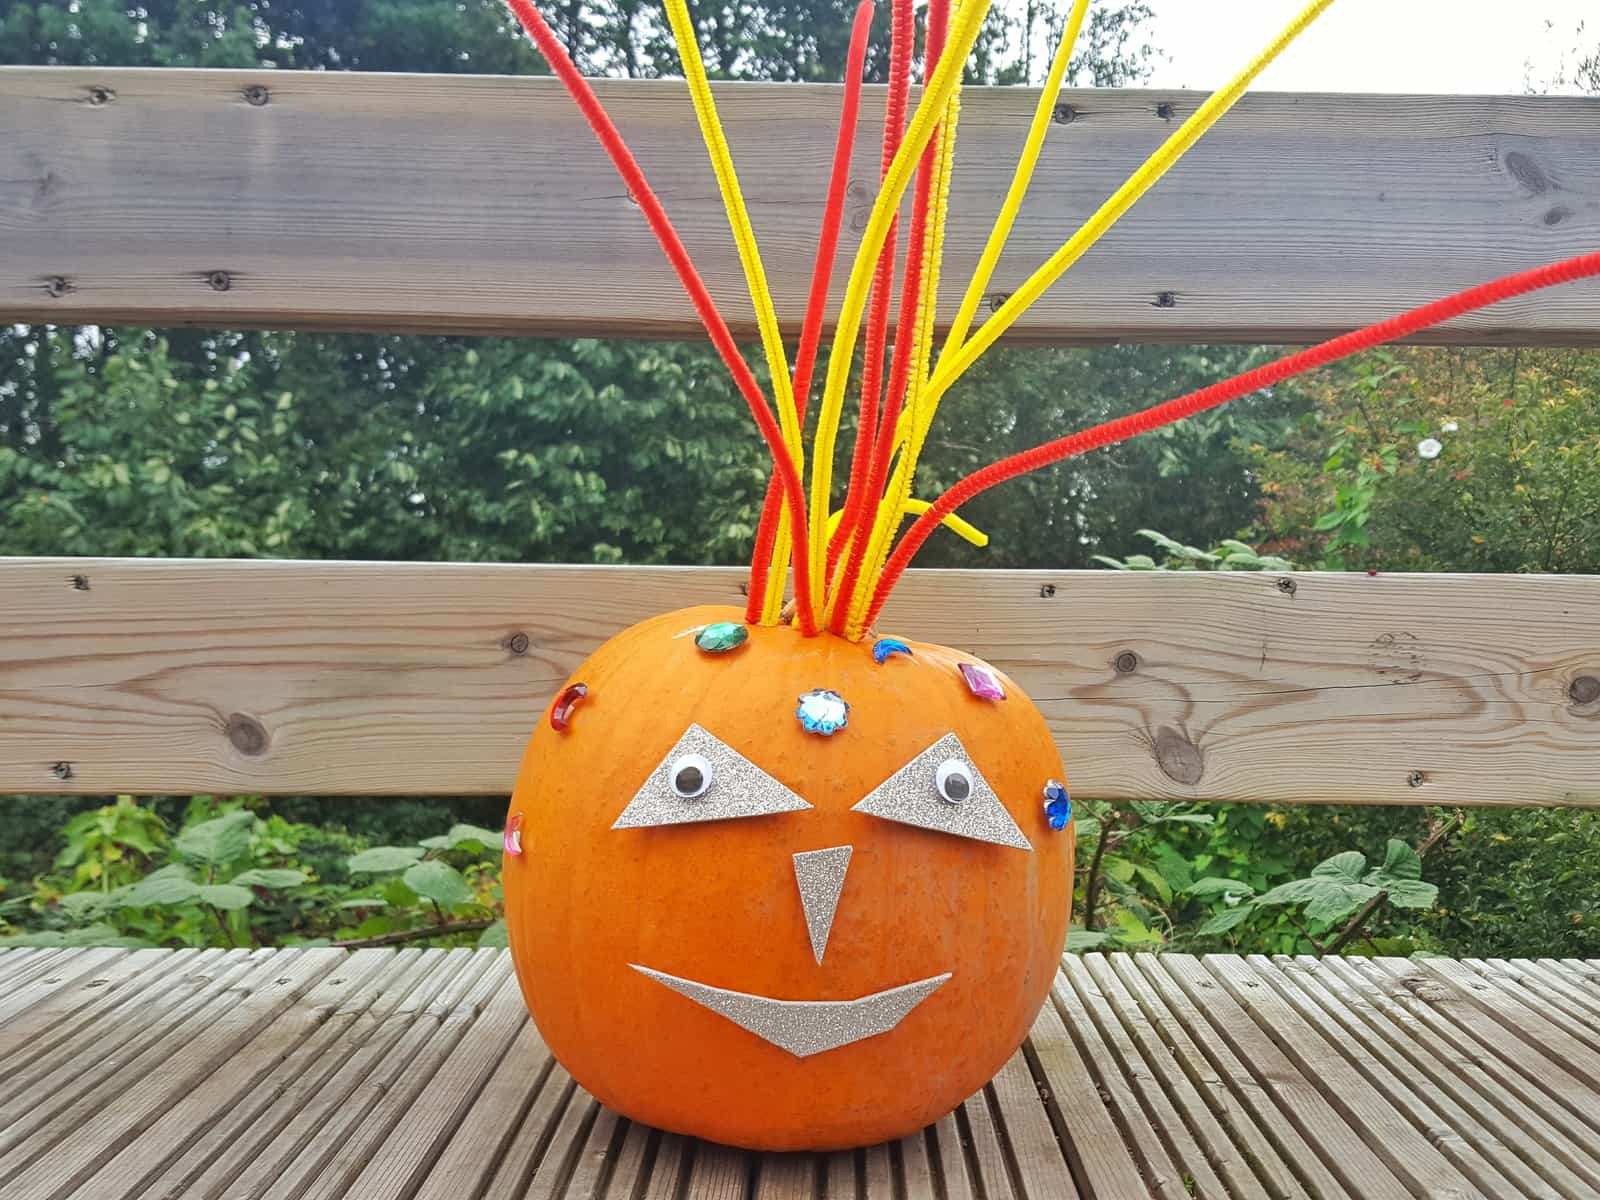 Halloween | These no-carve Halloween pumpkins are perfect for families with young children. Even toddlers can get involved with decorating their own pumpkin. This is a totally safe craft for children and they can play with it again and again with little or no adult supervision. You need minimal craft supplies and a pumpkin!